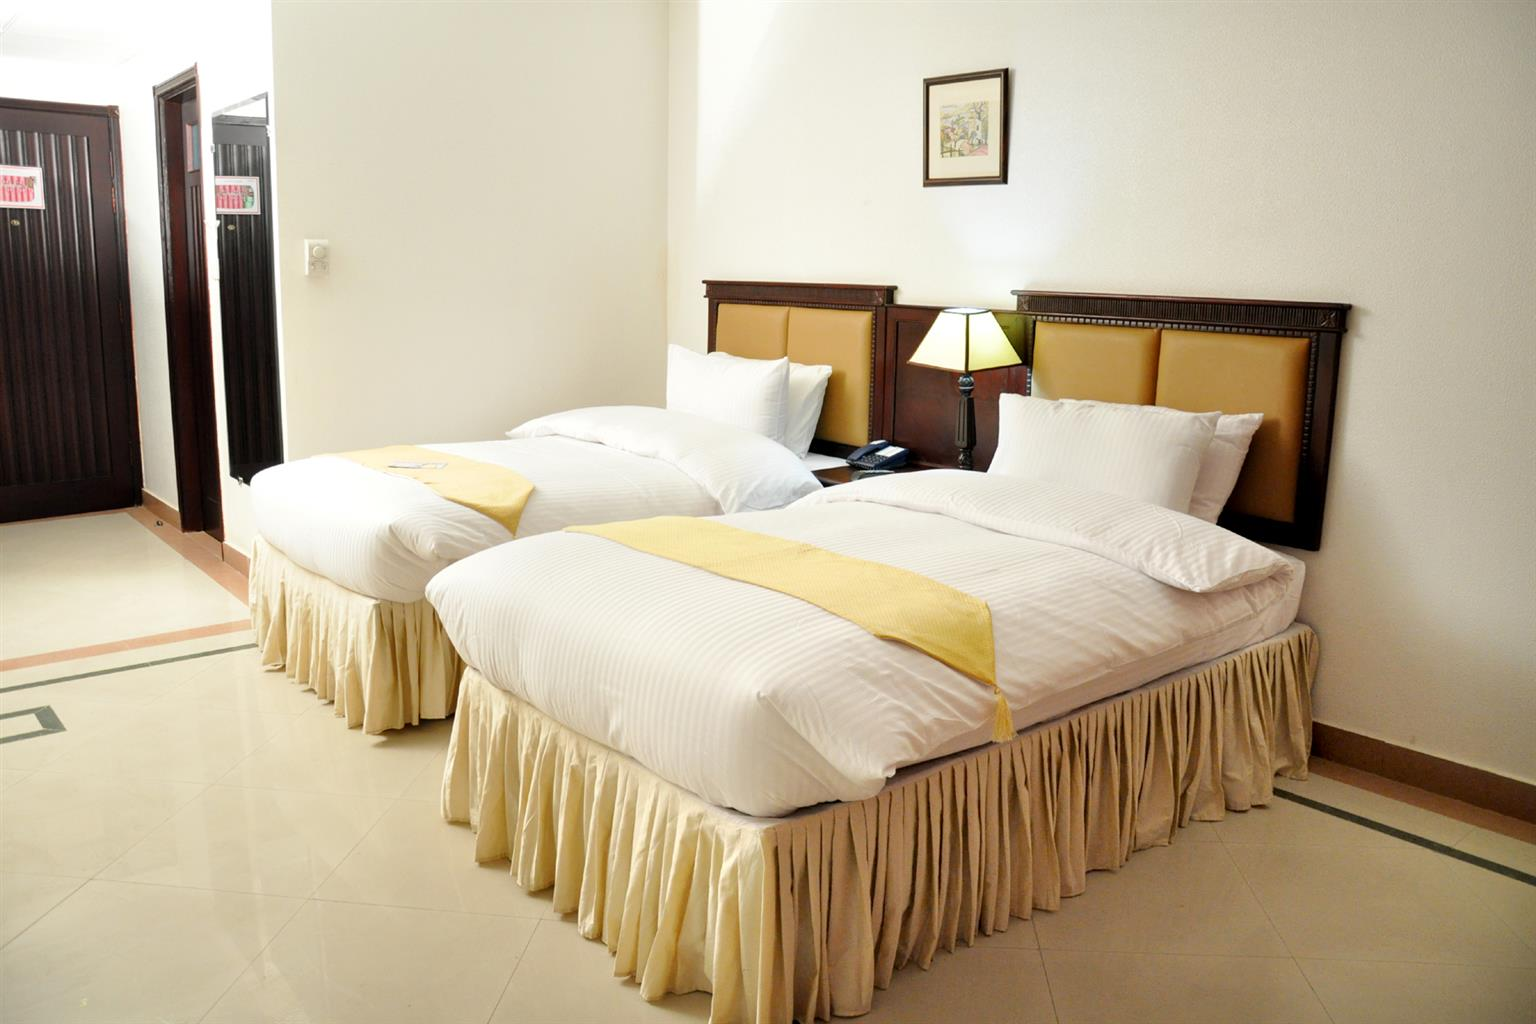 Best hotel for dating in lahore